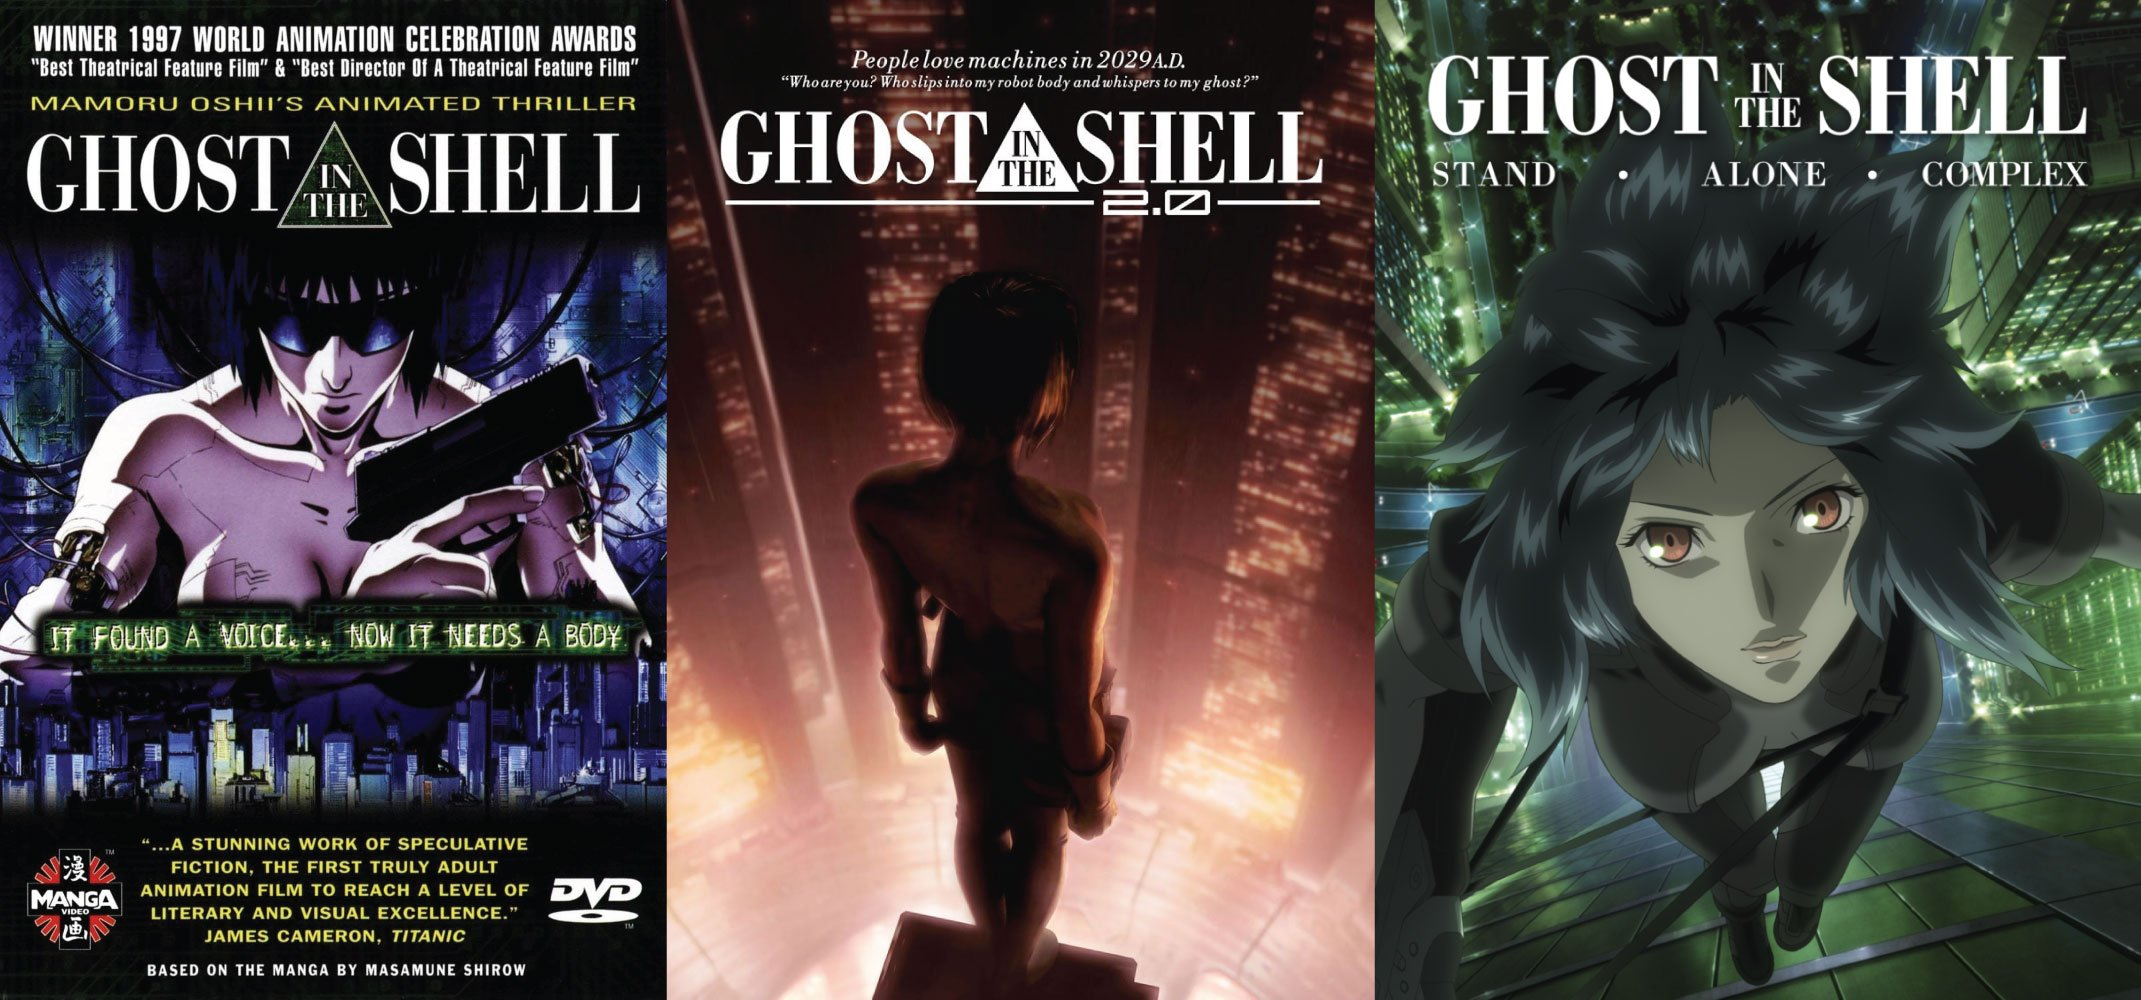 Ghost In The Shell 1995 2 0 Redux And Stand Alone Complex Are Coming To Funimation Now Uk Anime Uk News